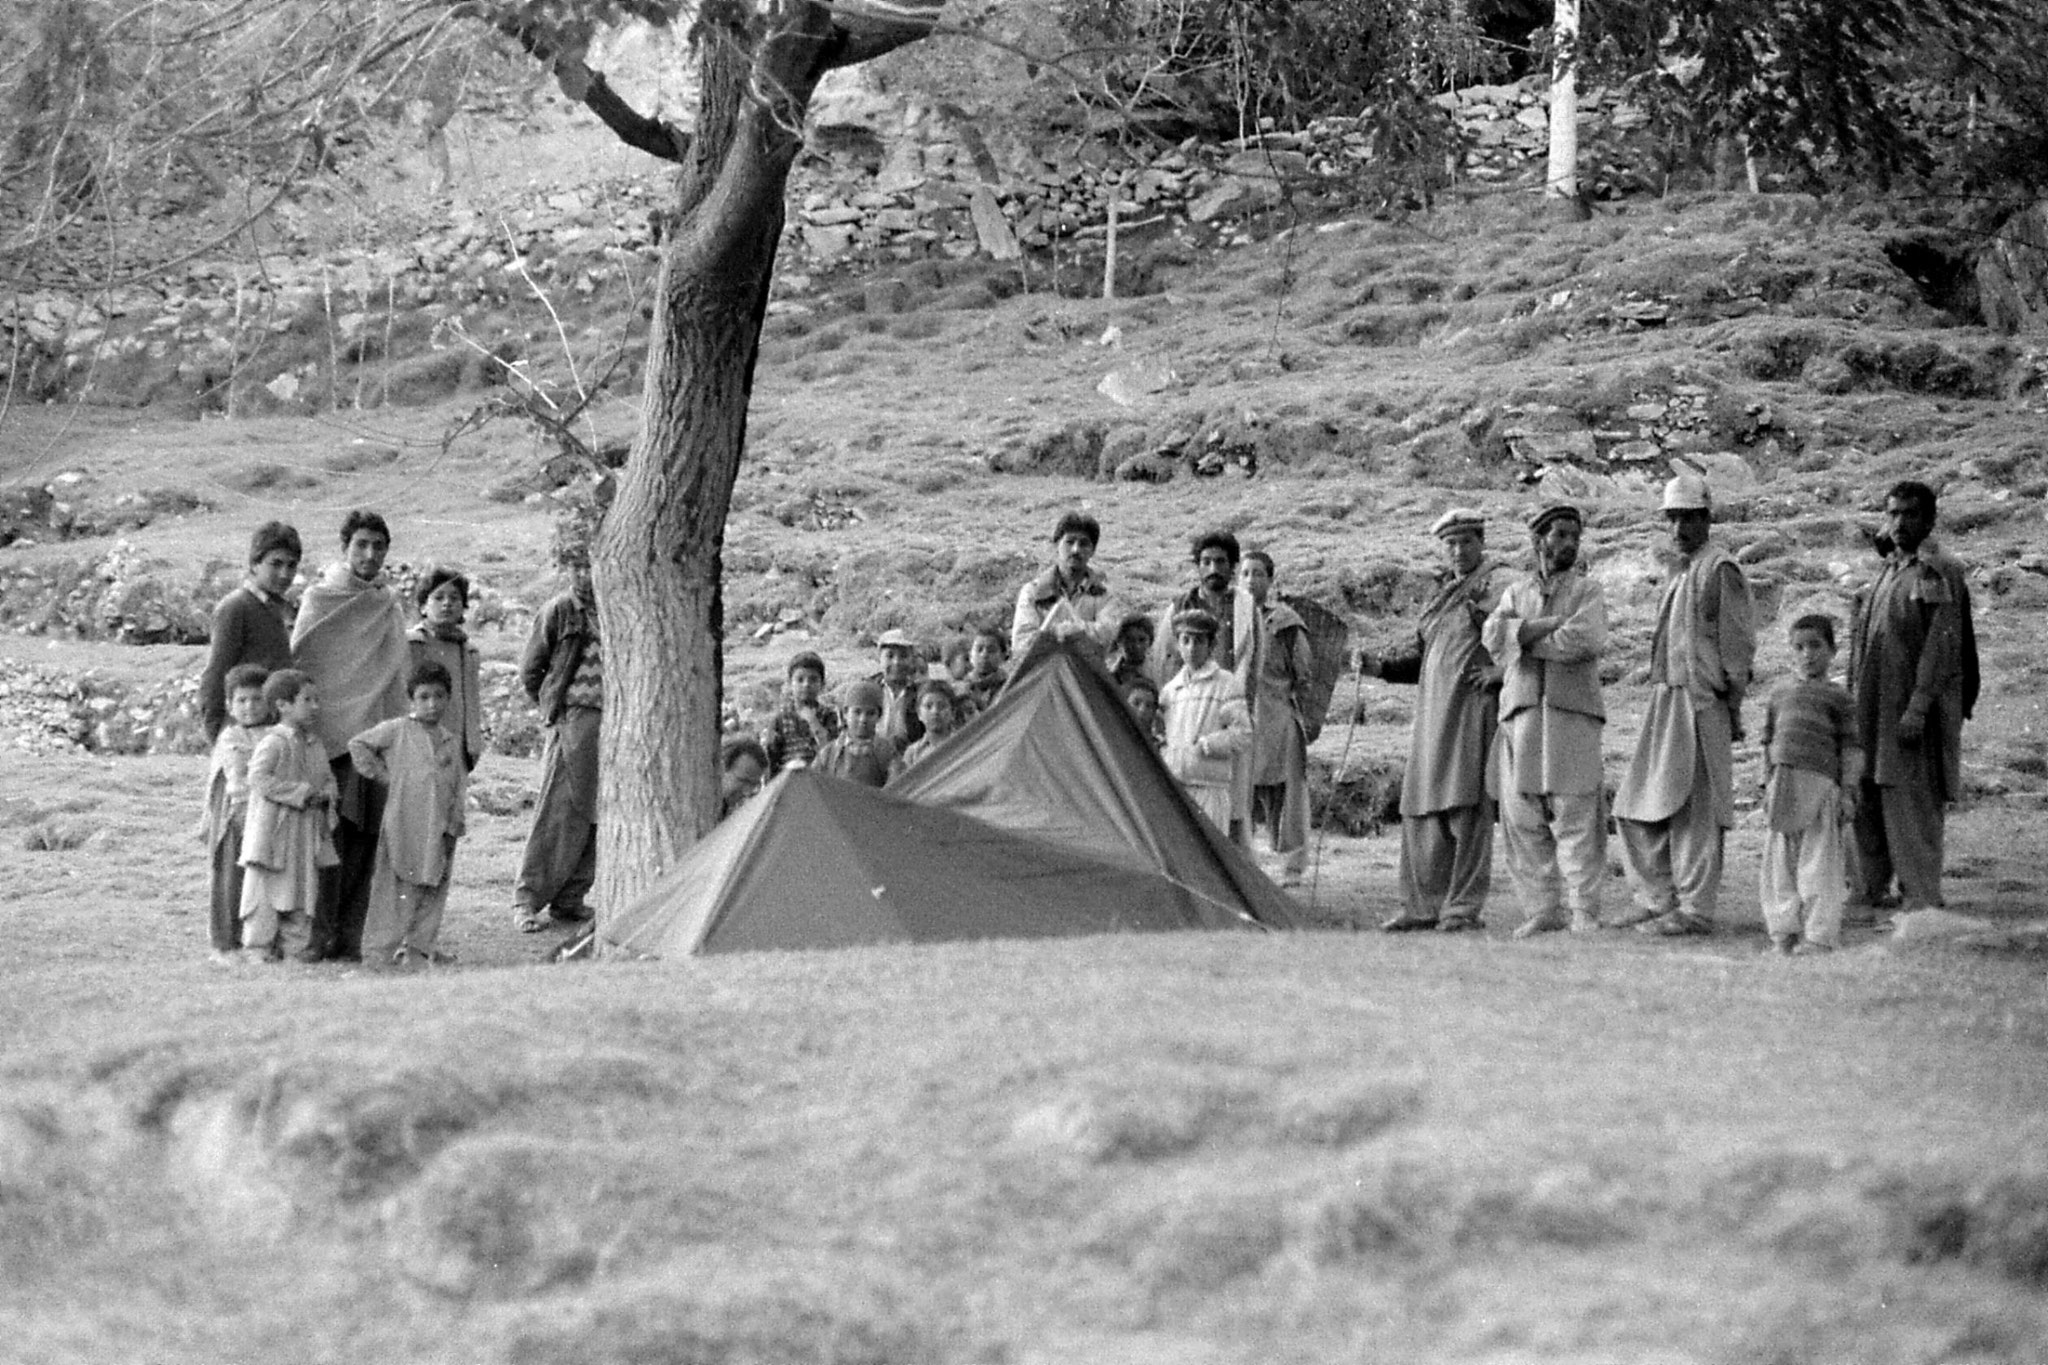 12/10/1989: 11: Kiris, crowd around our tent